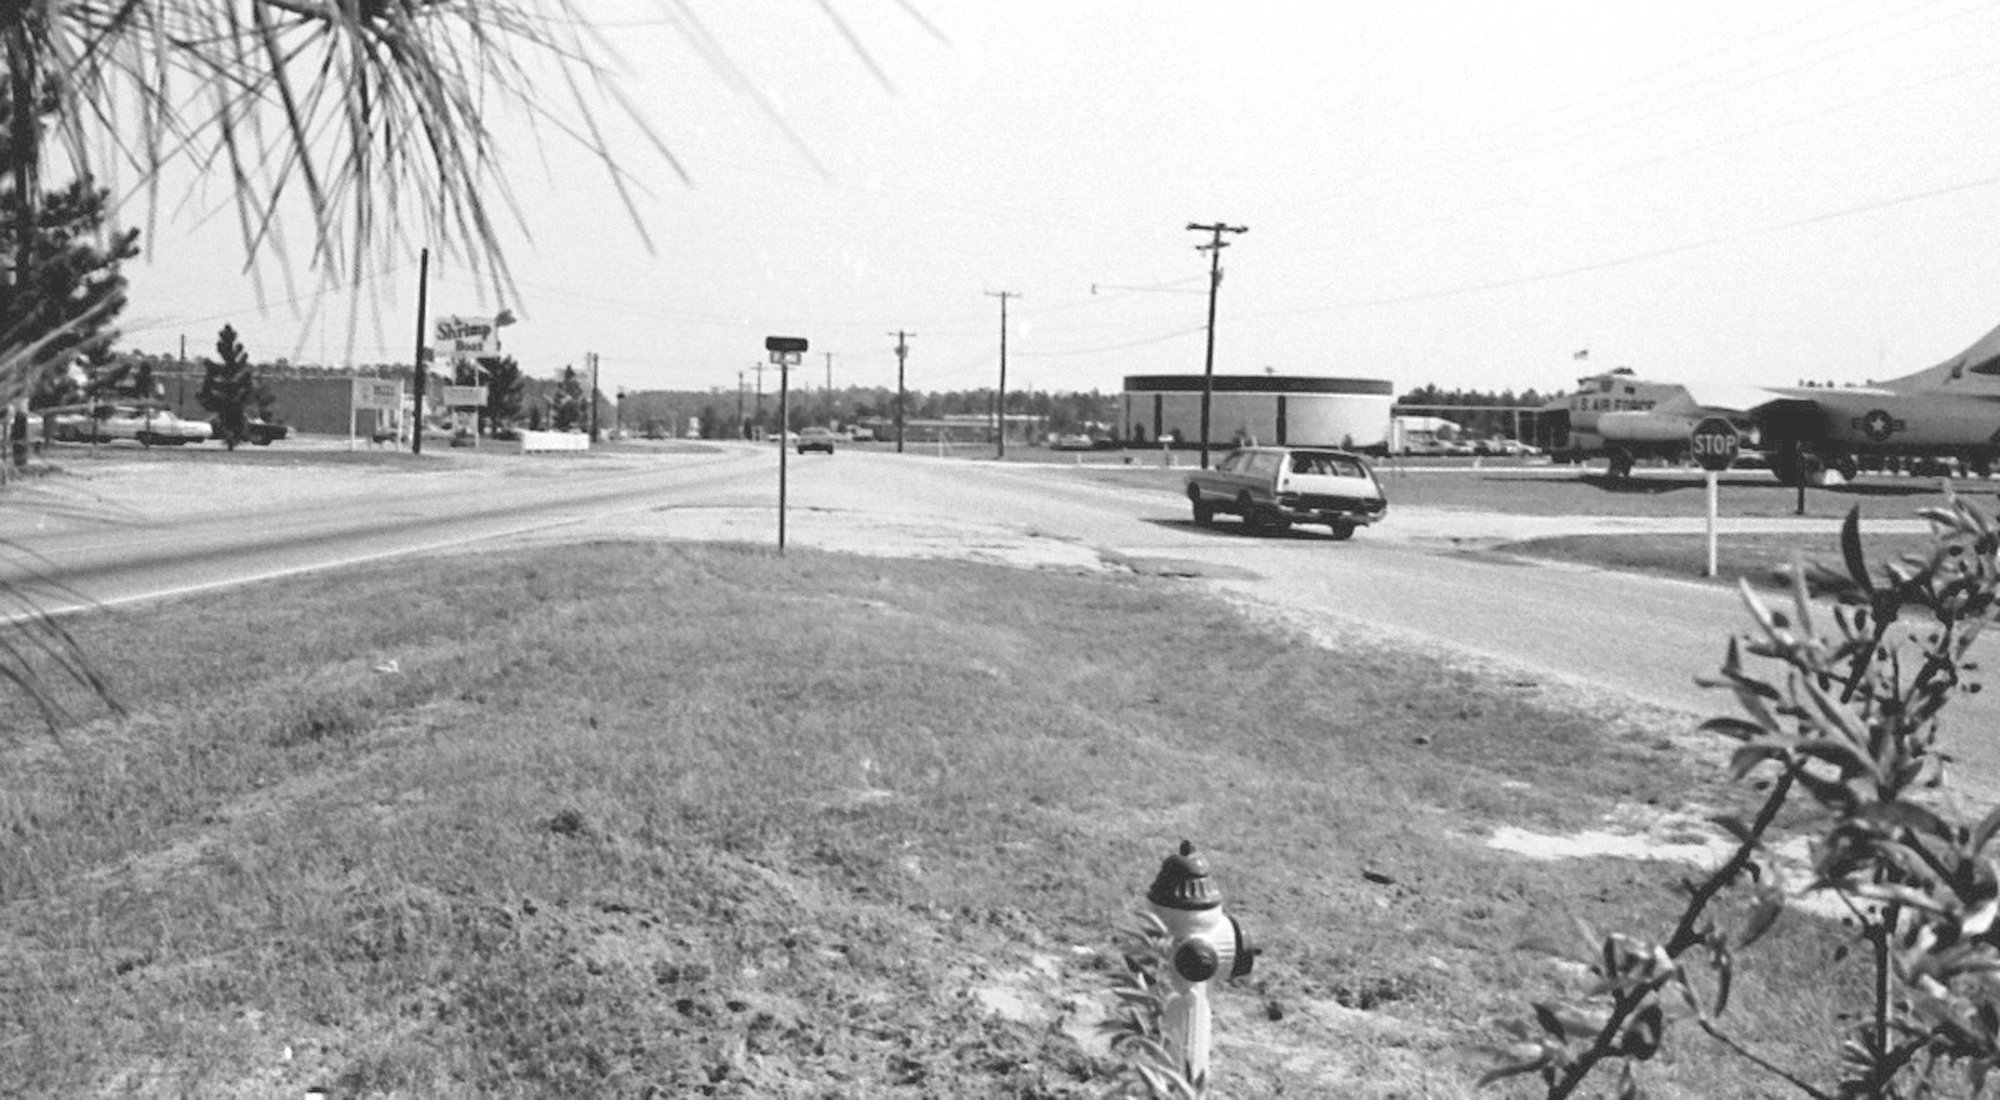 A decommissioned Air Force plane was put on display at Sumter TEC in 1965. This was the original intersection of Bultman and Guignard drives in 1971 with the aircraft seen at far right.